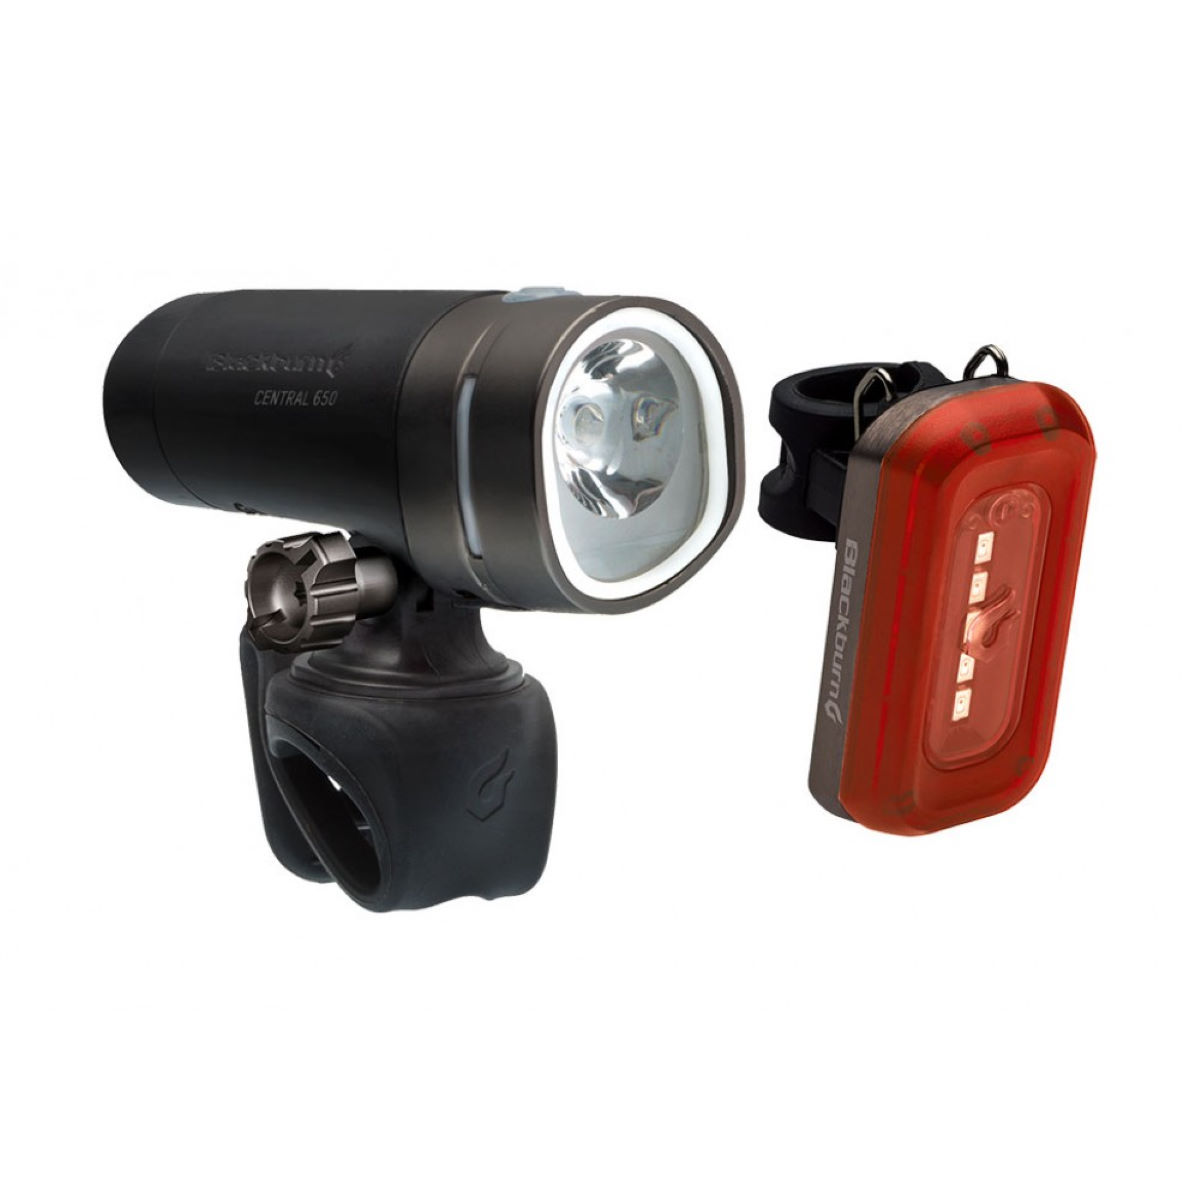 Blackburn Central 650 Front / 50 Rear Light set - Juegos de luces